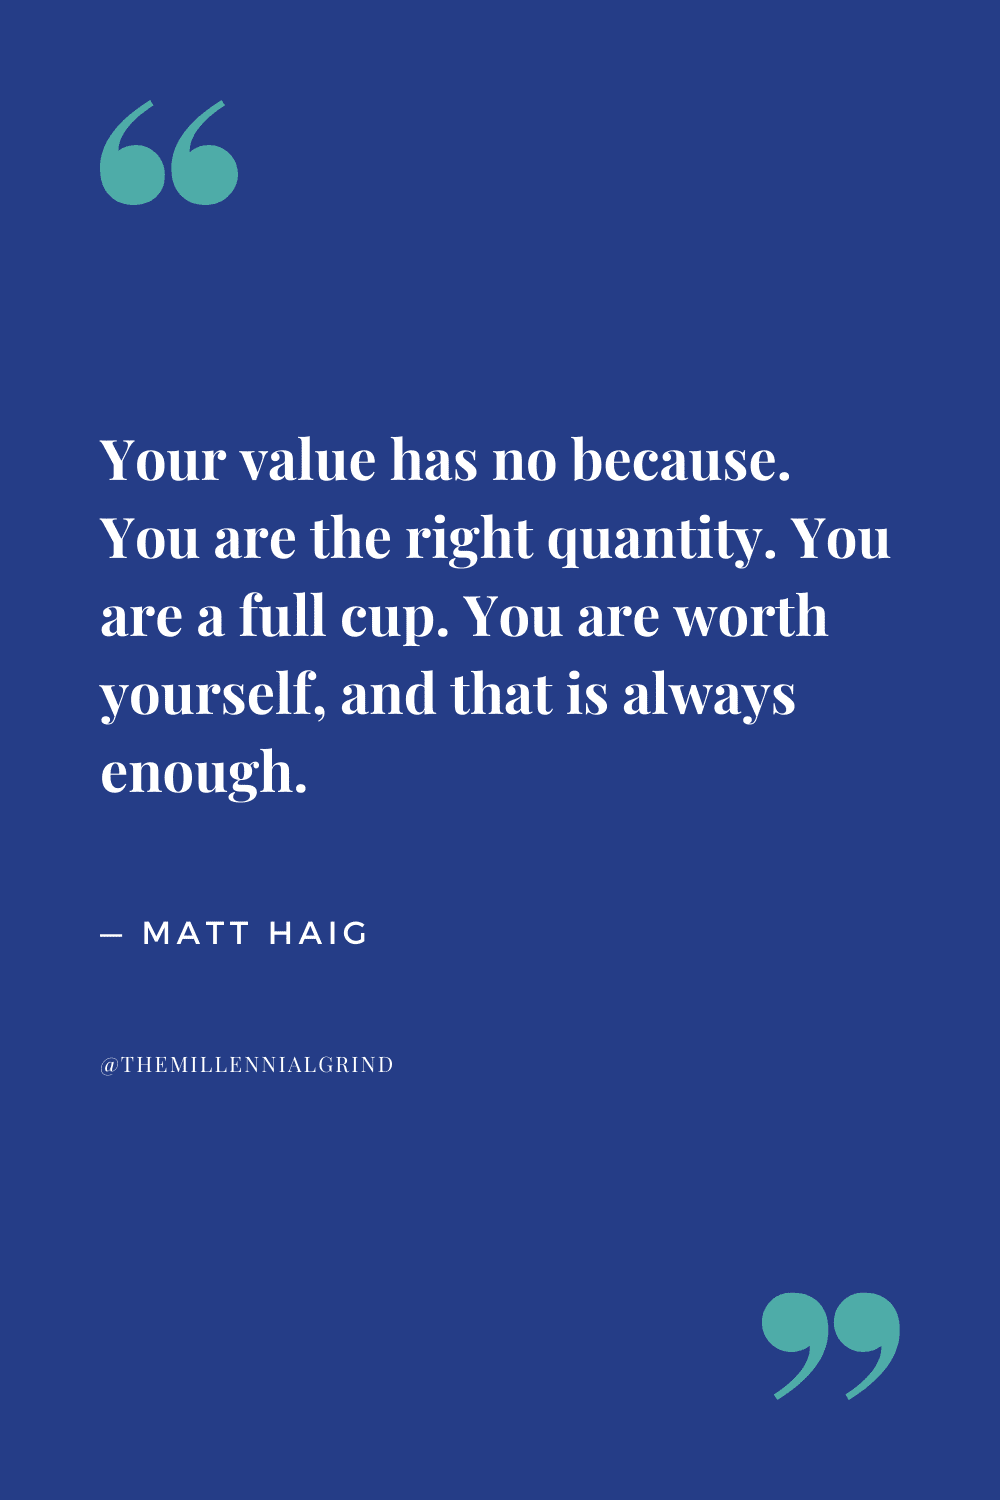 Quotes from The Comfort Book by Matt Haig